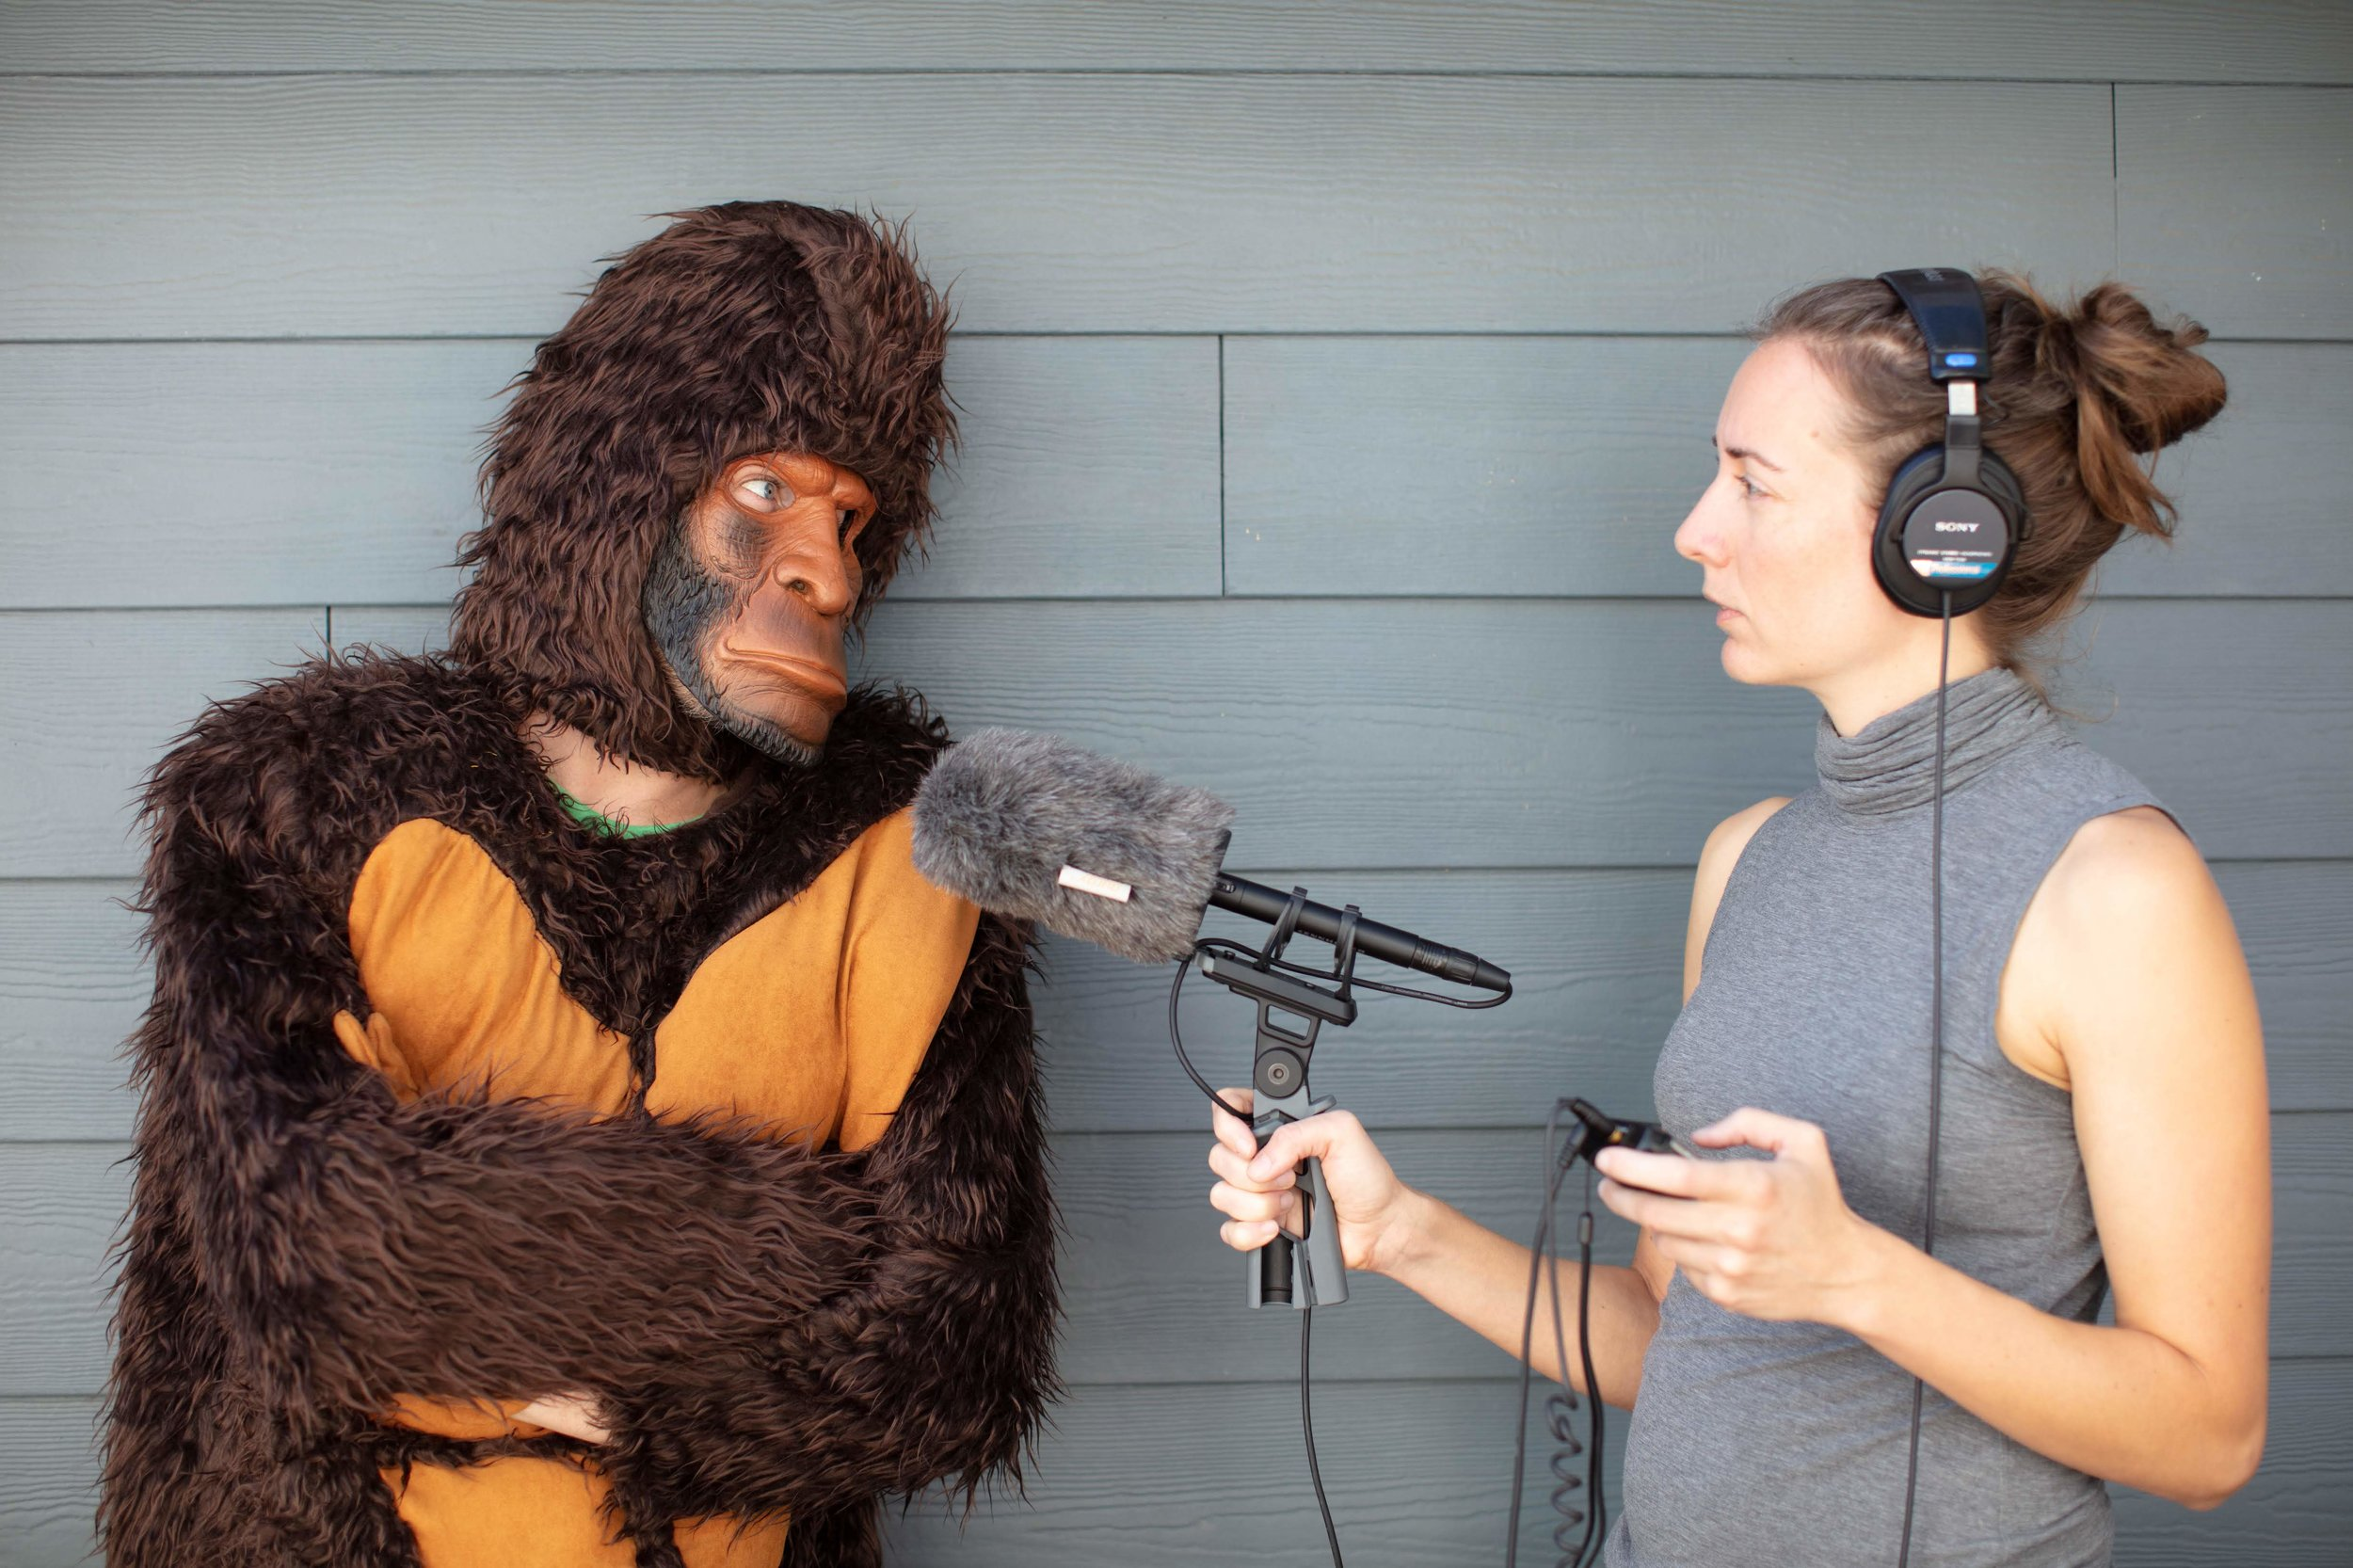 Laura Krantz spent two years searching for Bigfoot as part of her podcast, Wild Thing. (credit: Jake Holschuh/Foxtopus Ink)